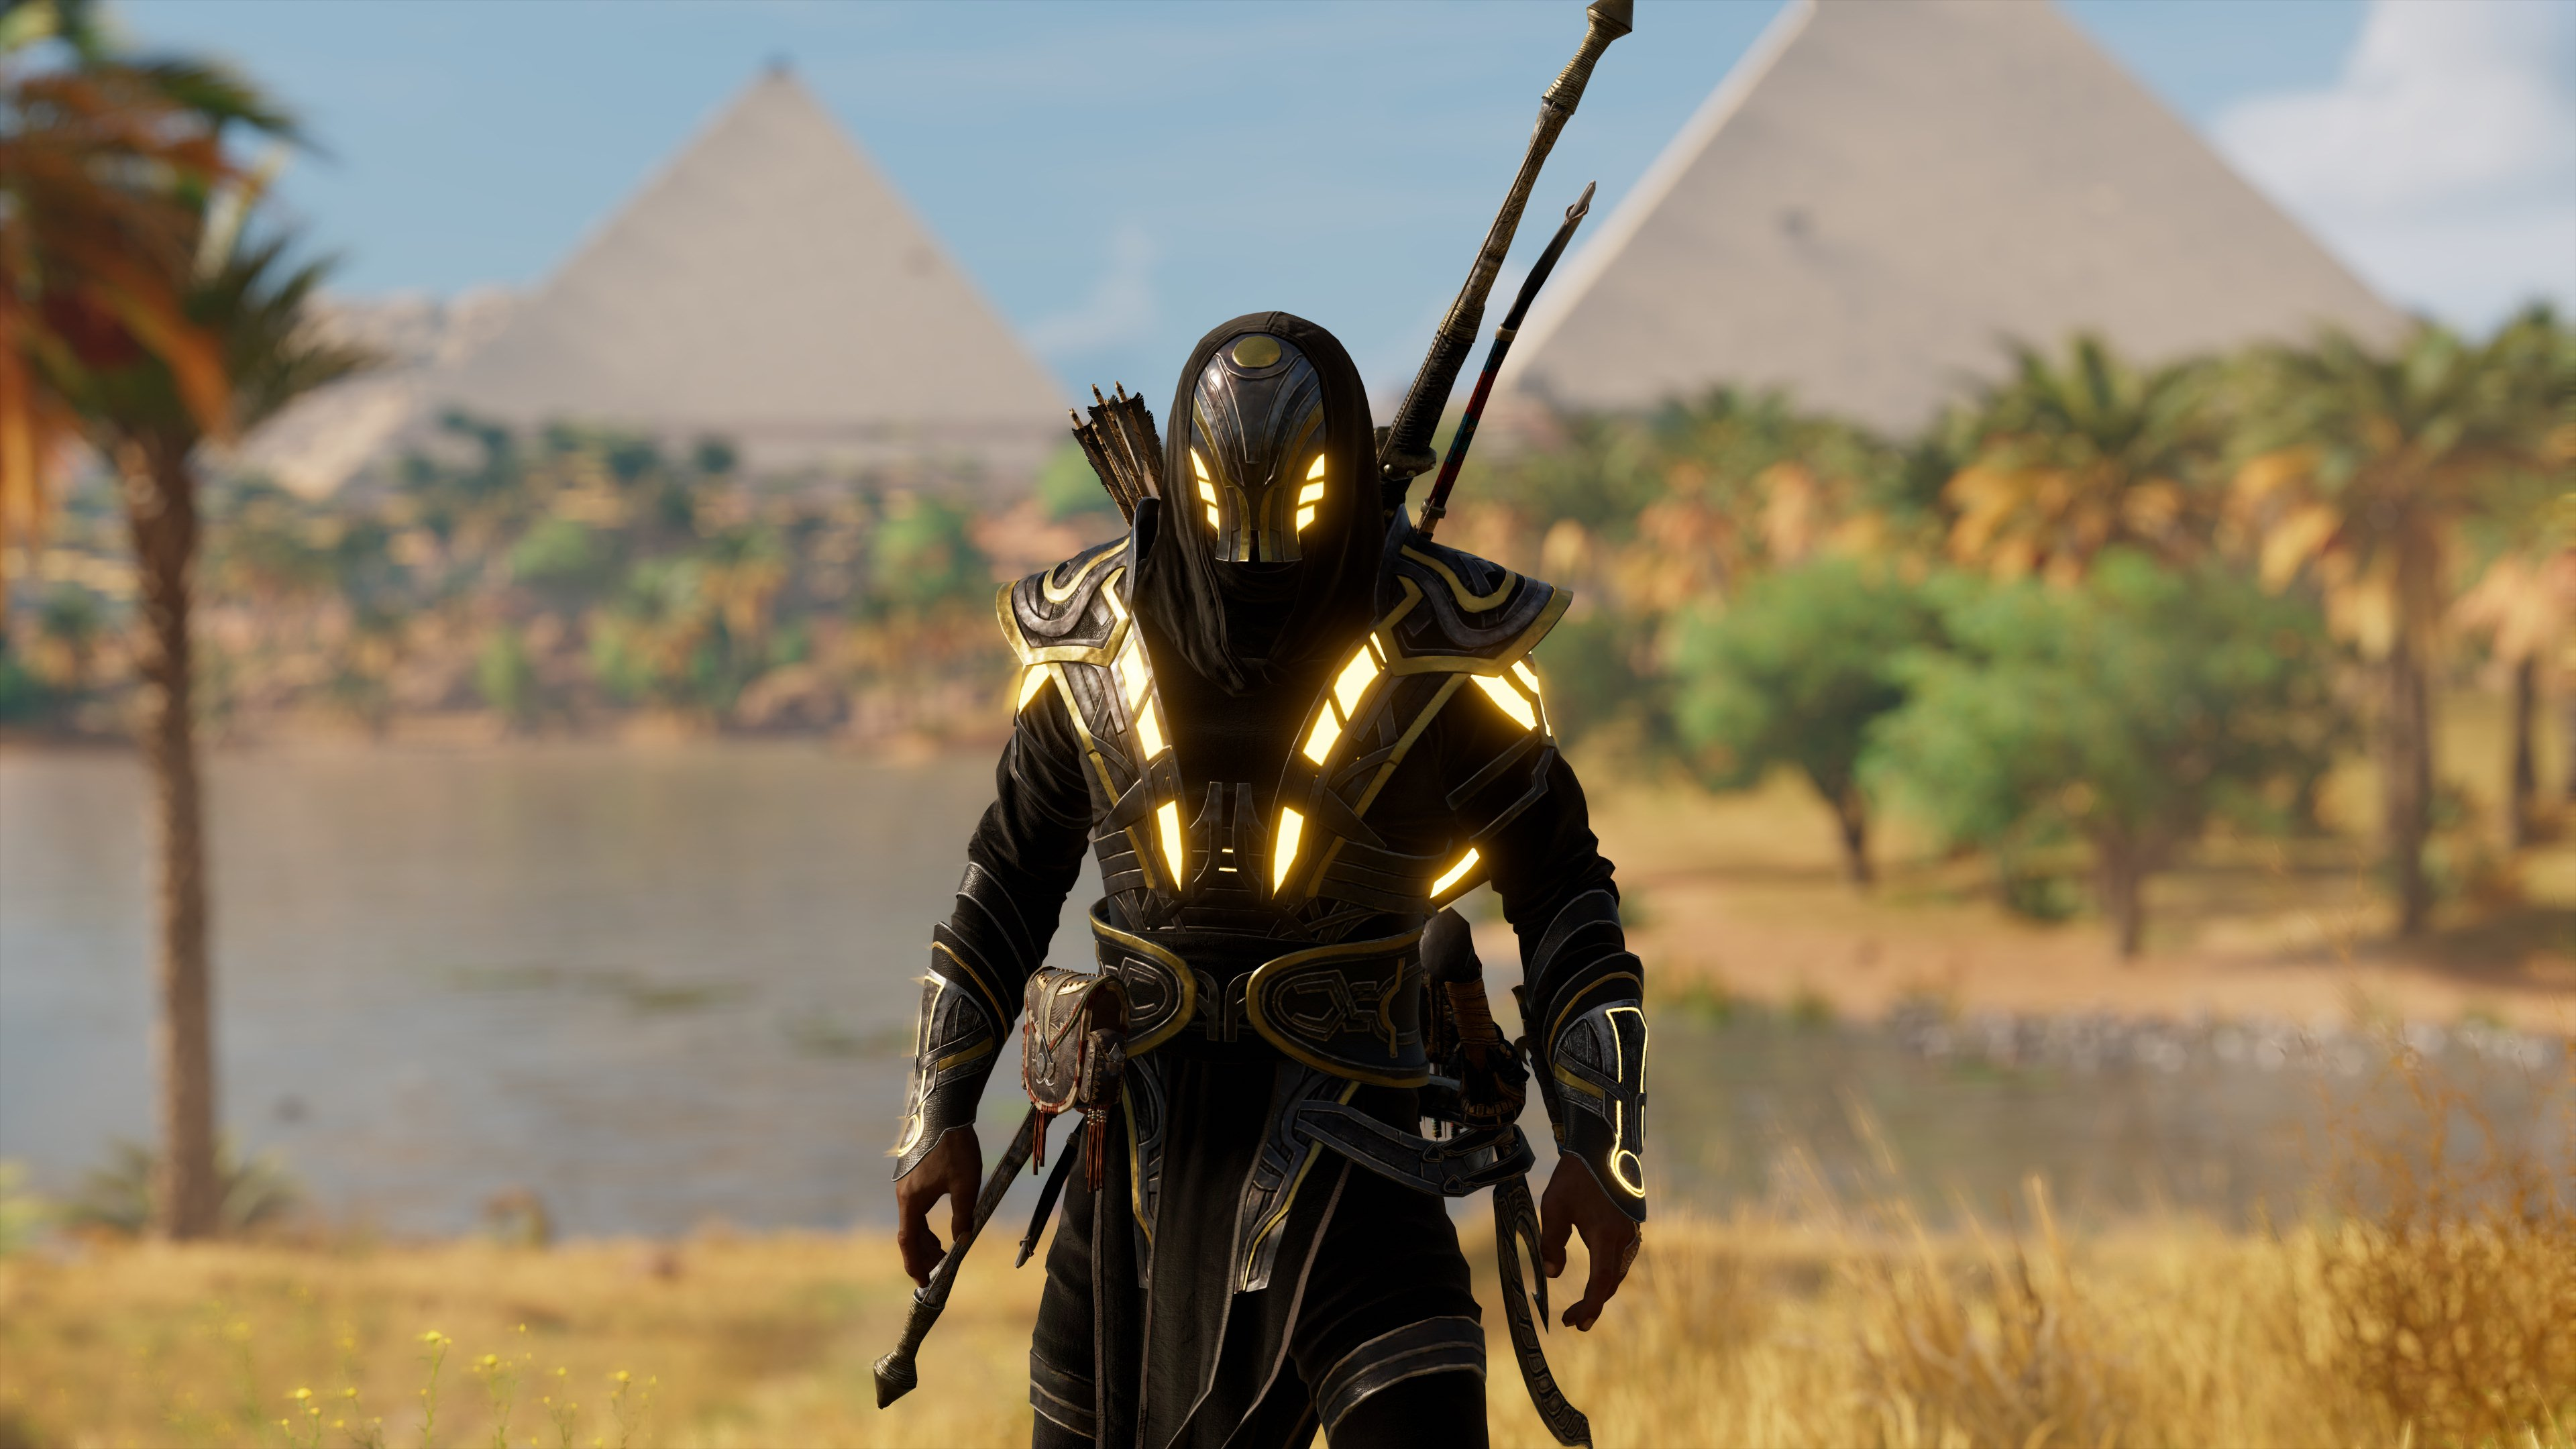 Black Gold Isu Armor At Assassin S Creed Origins Nexus Mods And